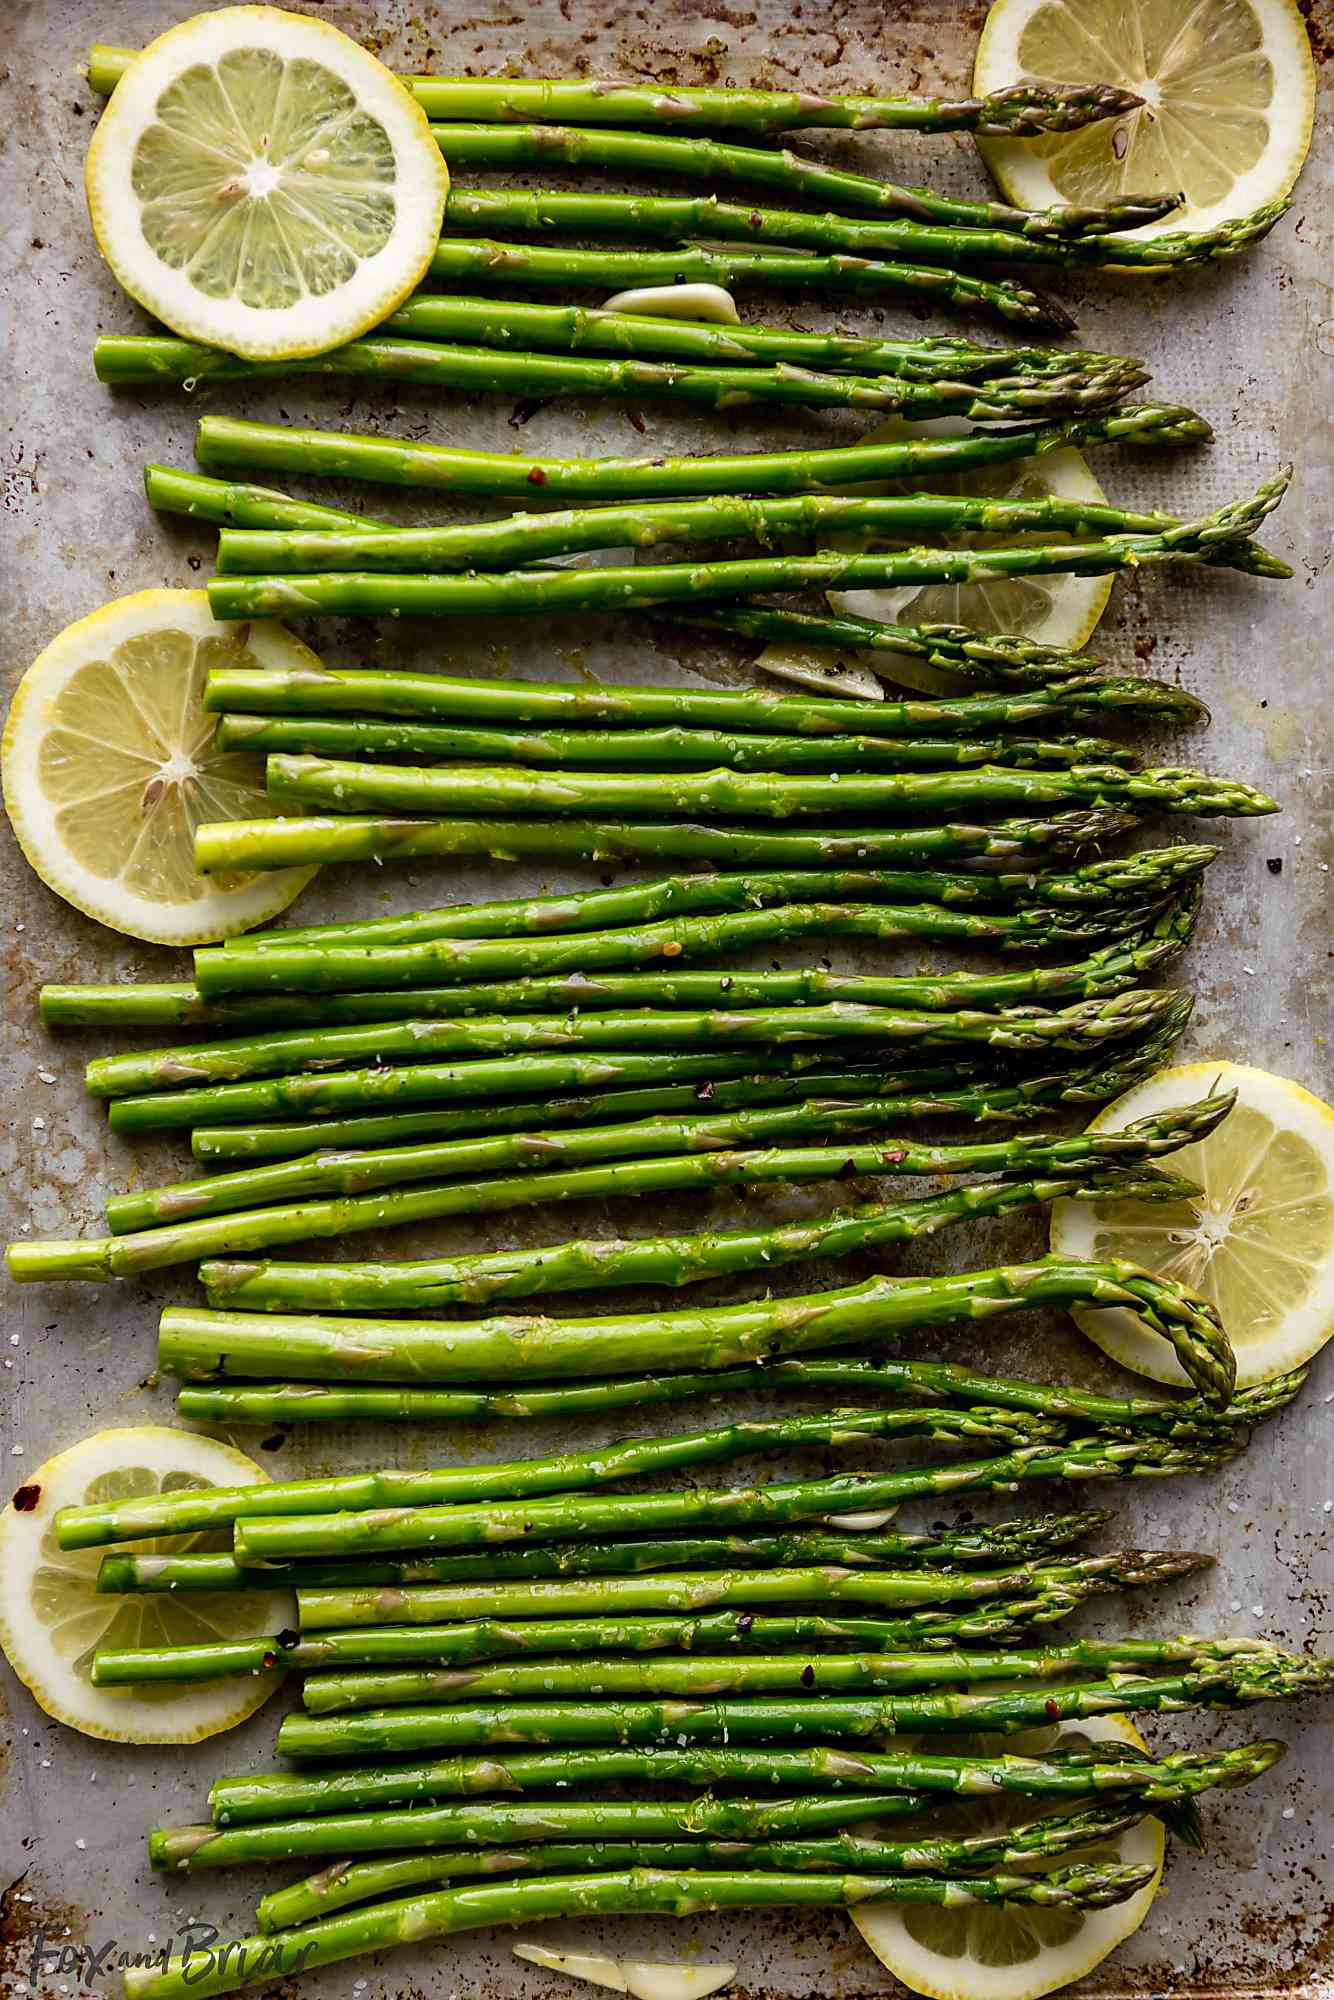 Asparagus spears on a sheet pan with lemon slices